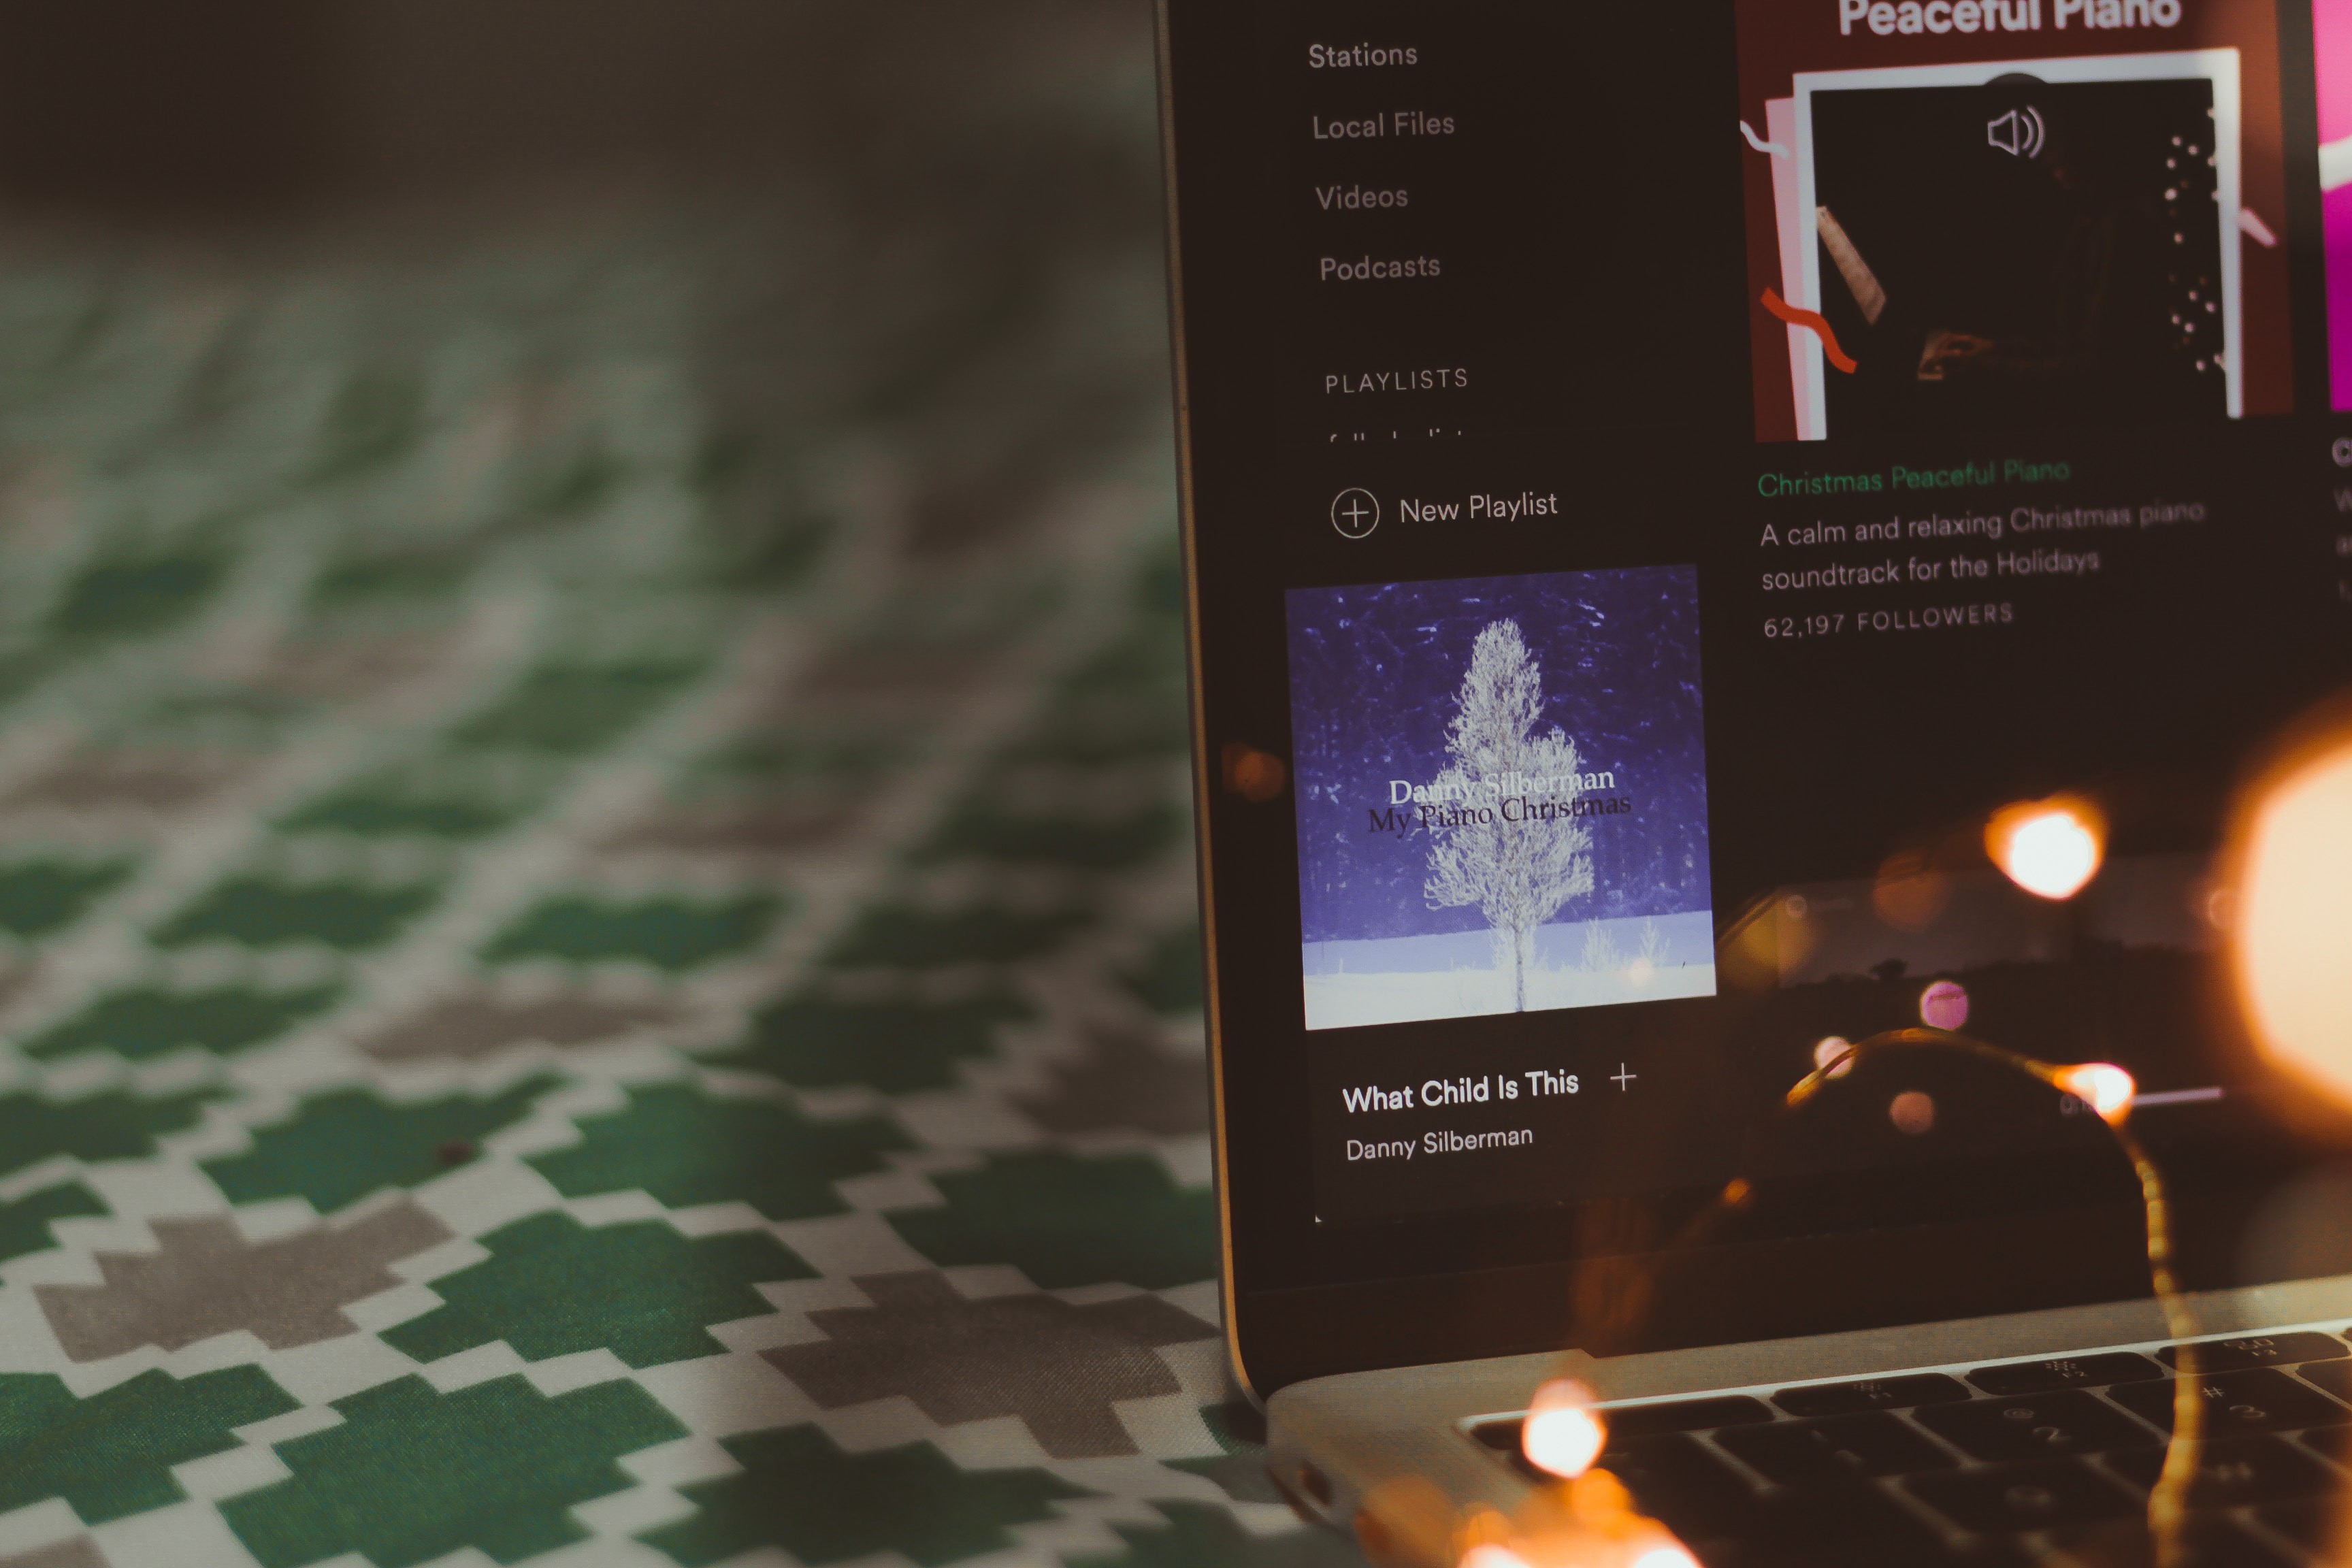 Building Music Playlists Recommendation System - Towards